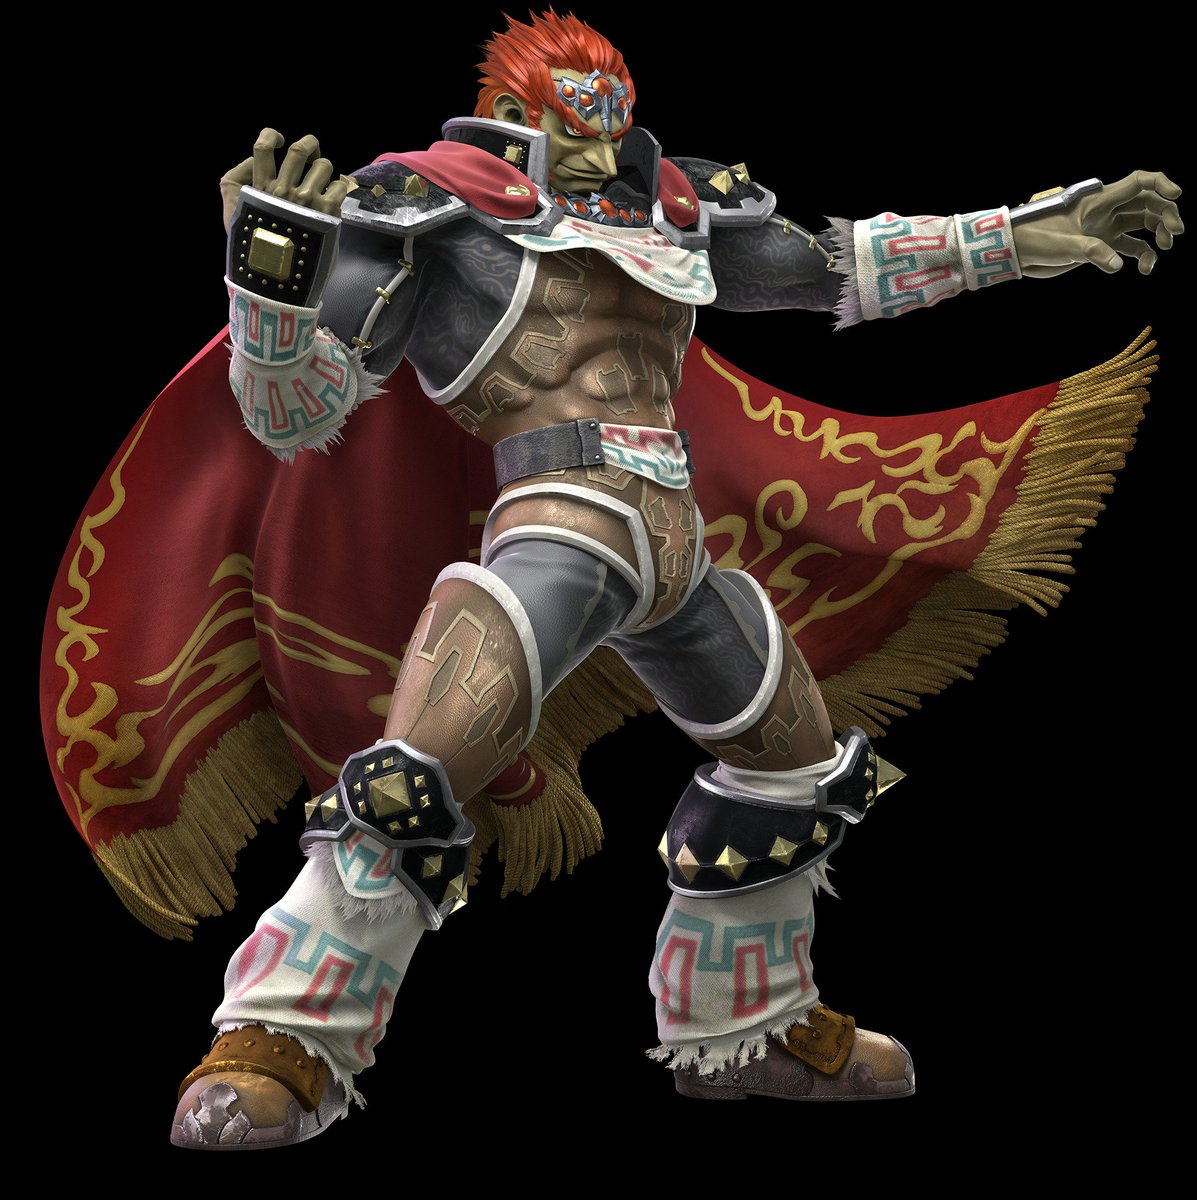 Almojo On Twitter Official Render Of Ganondorf From Super